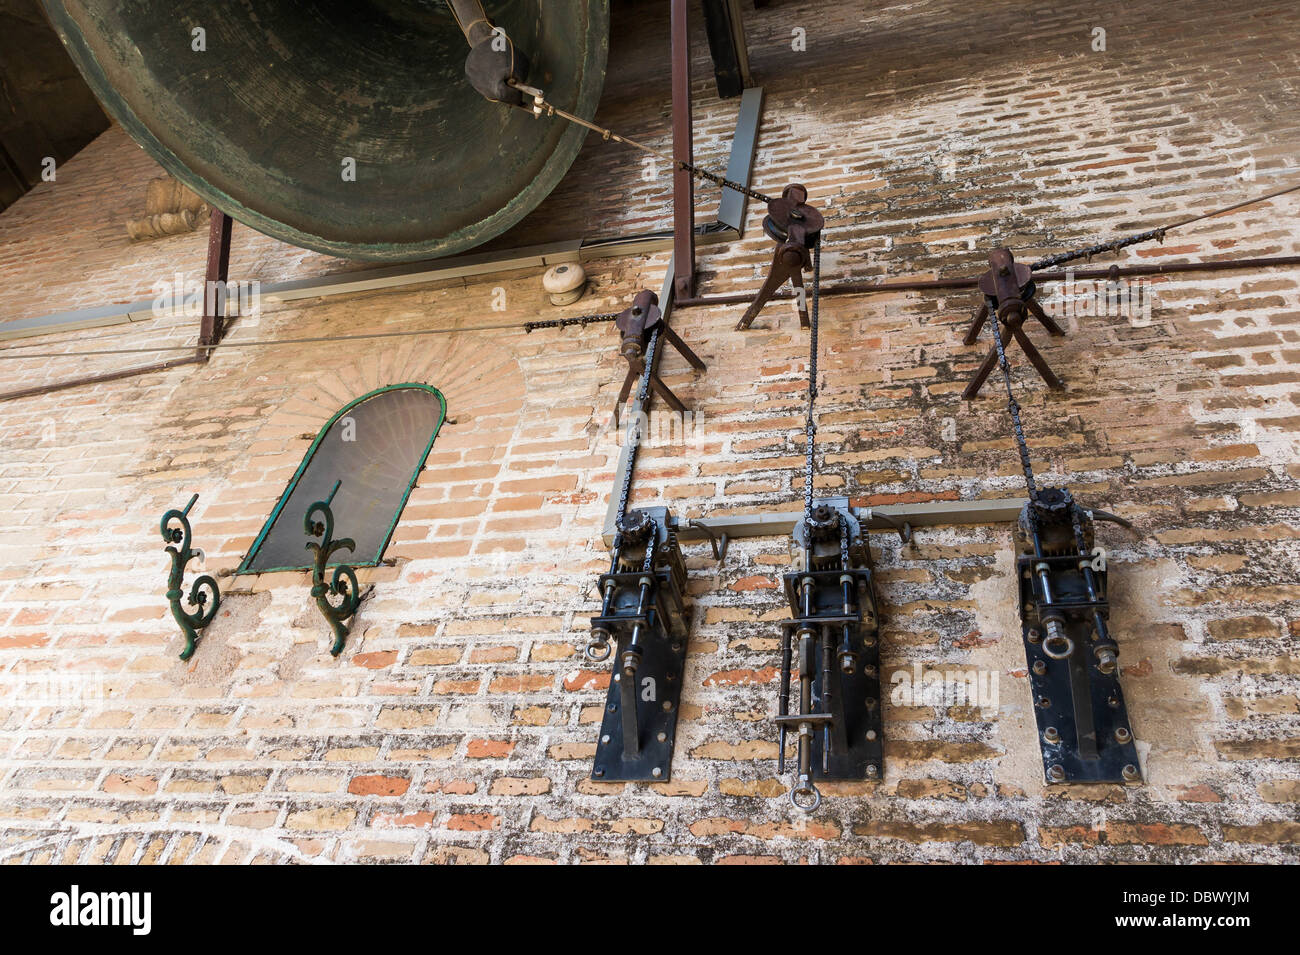 How to ring bells with electric motors, Giralda tower, Seville, Spain. - Stock Image